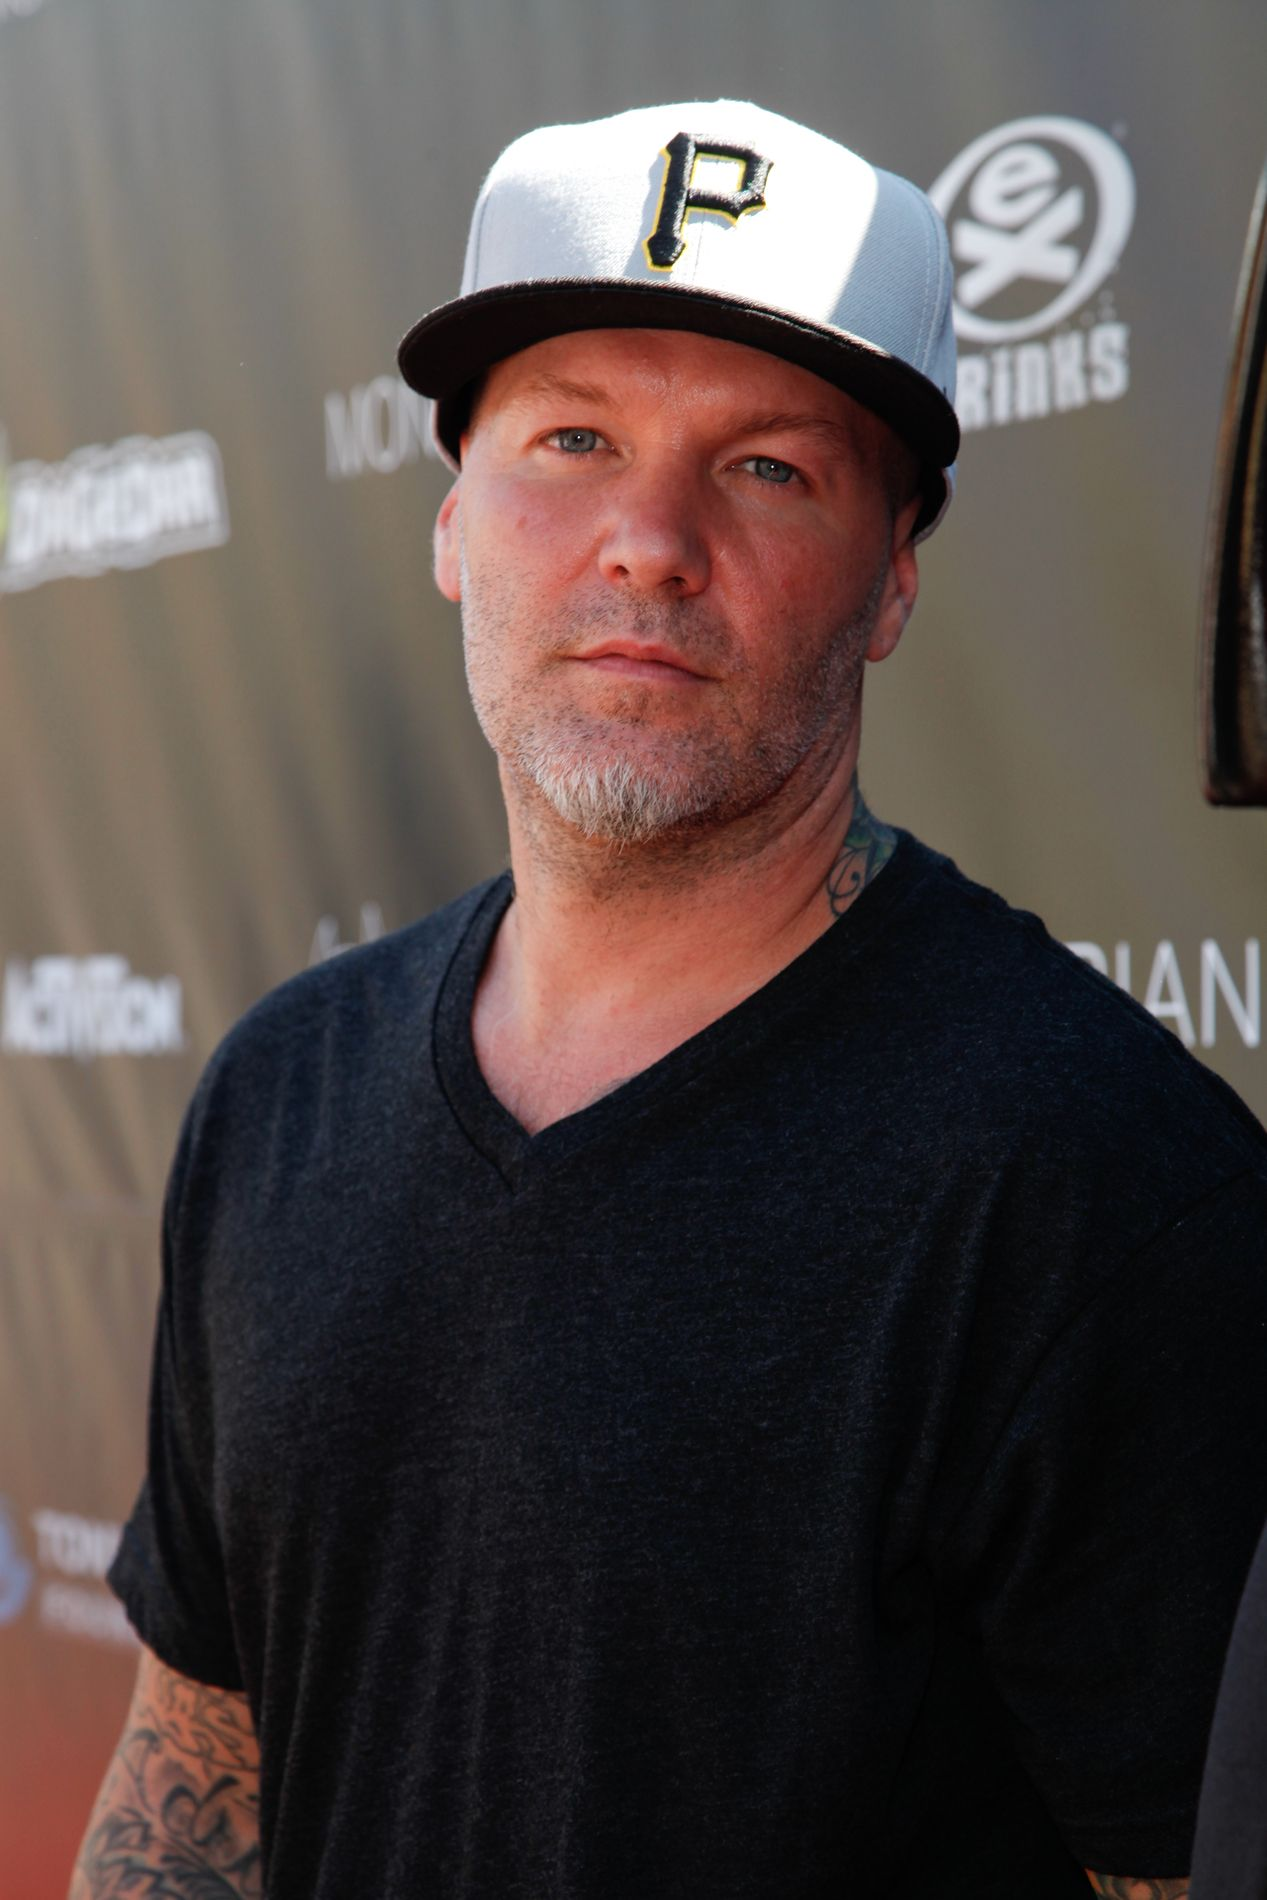 047cd7bed6d38 The only thing saving Fred Durst in this picture is the Pirate cap. Just  saying.